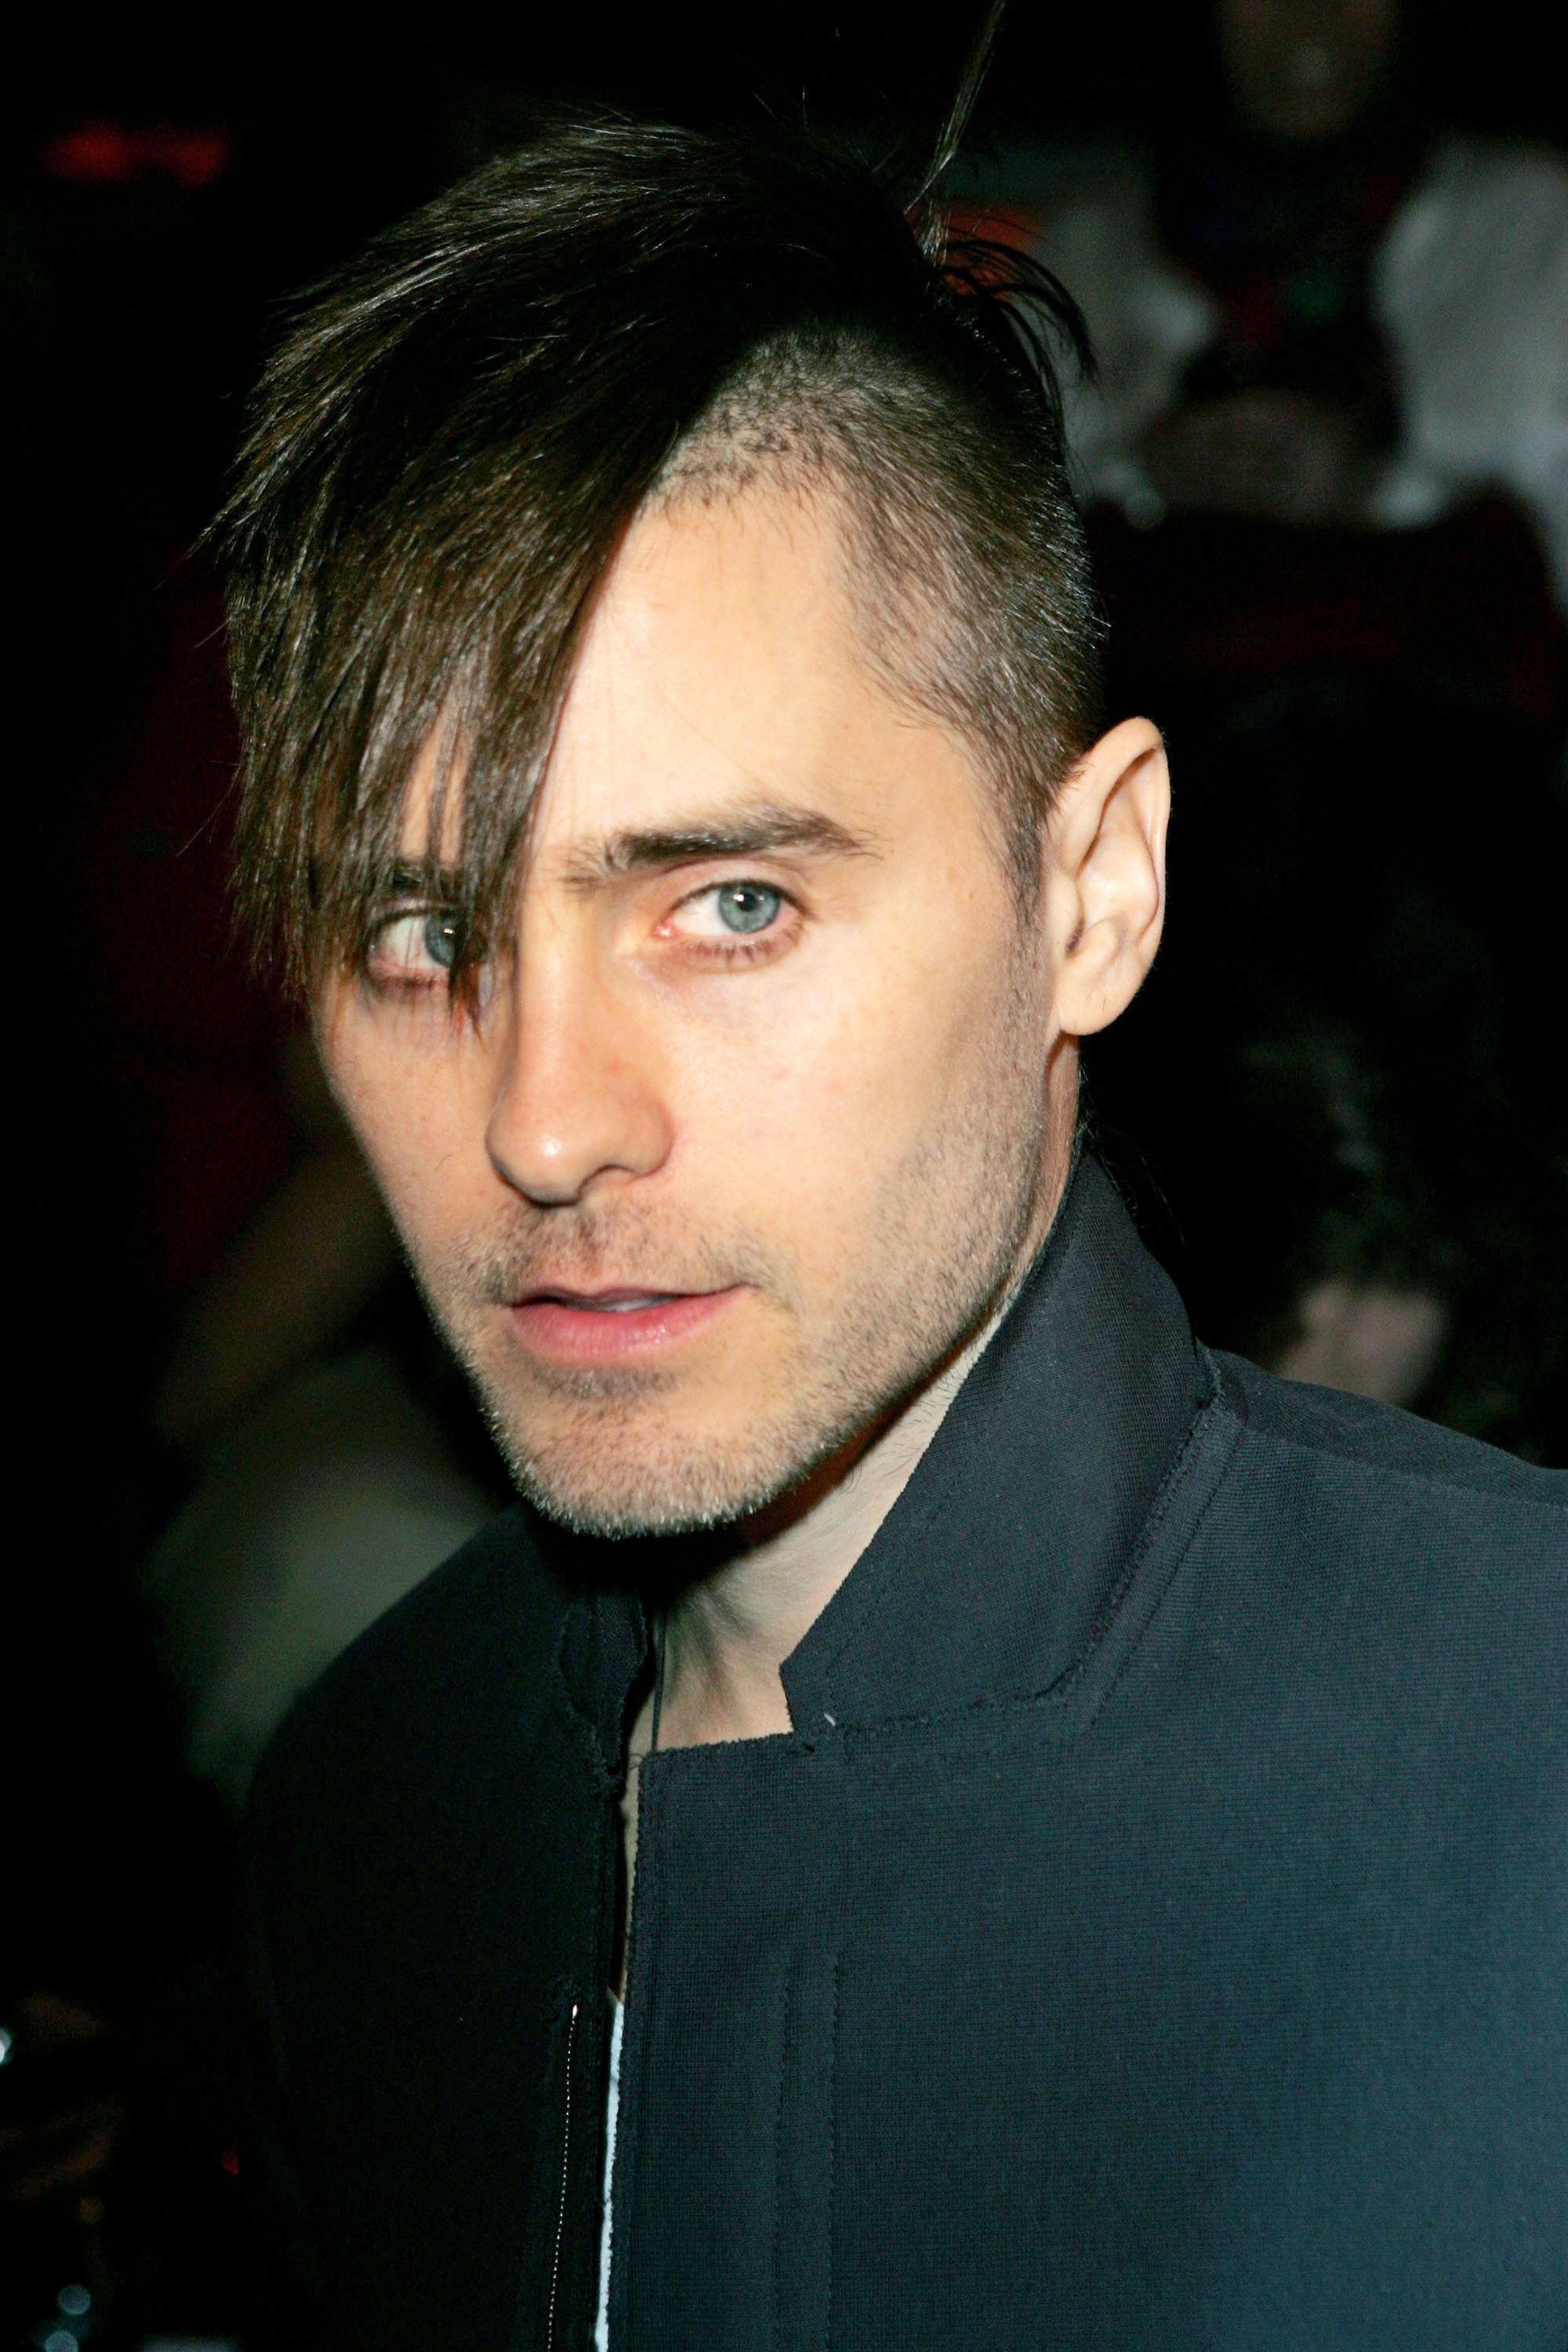 Jared Leto Shows Off Normal Hair At The Mtv Movie Awards Jared Leto Hair Jared Leto Haircut Jared Leto Short Hair